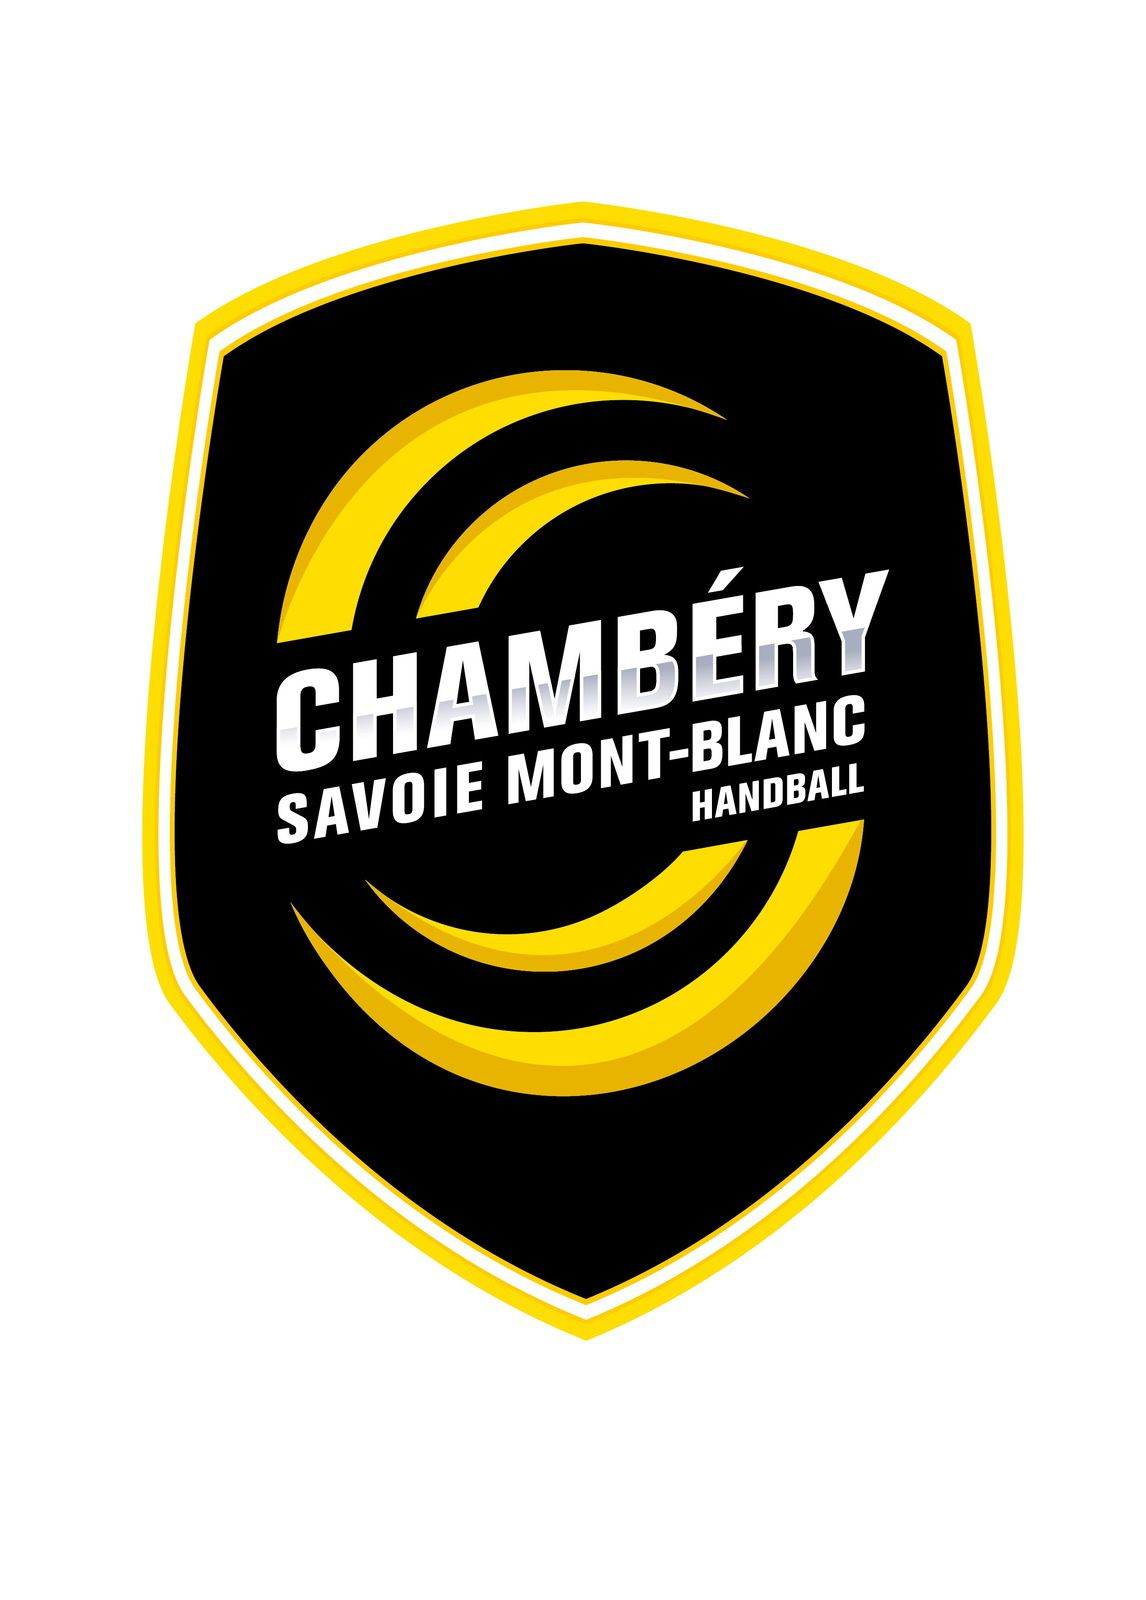 CHAMBERY travaille son audience article du DL 21 février 2019